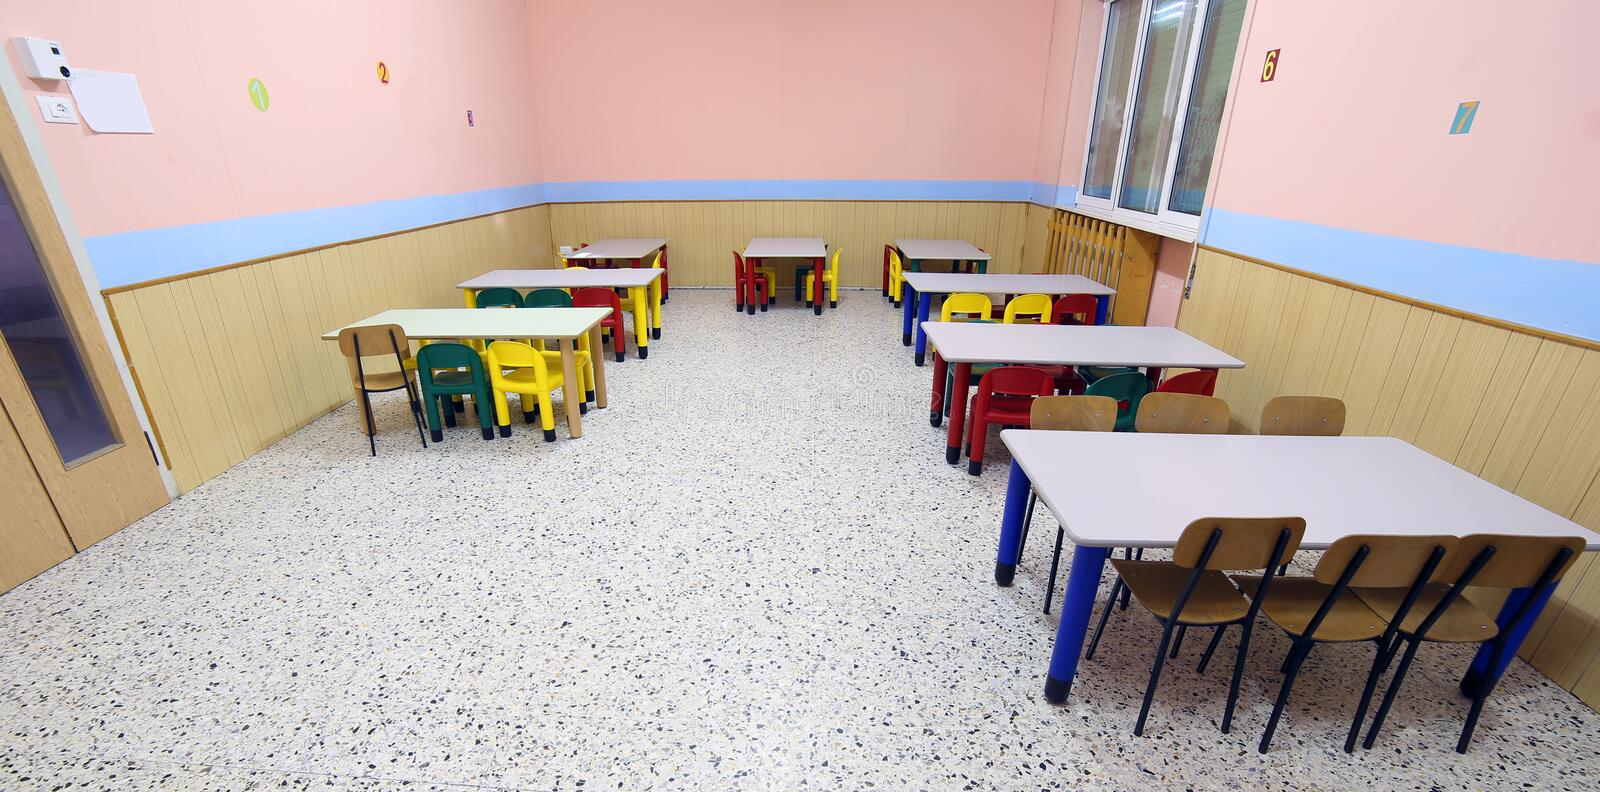 Download Tables And Chairs In The Dining Room Of Nursery Canteen Stock Photo